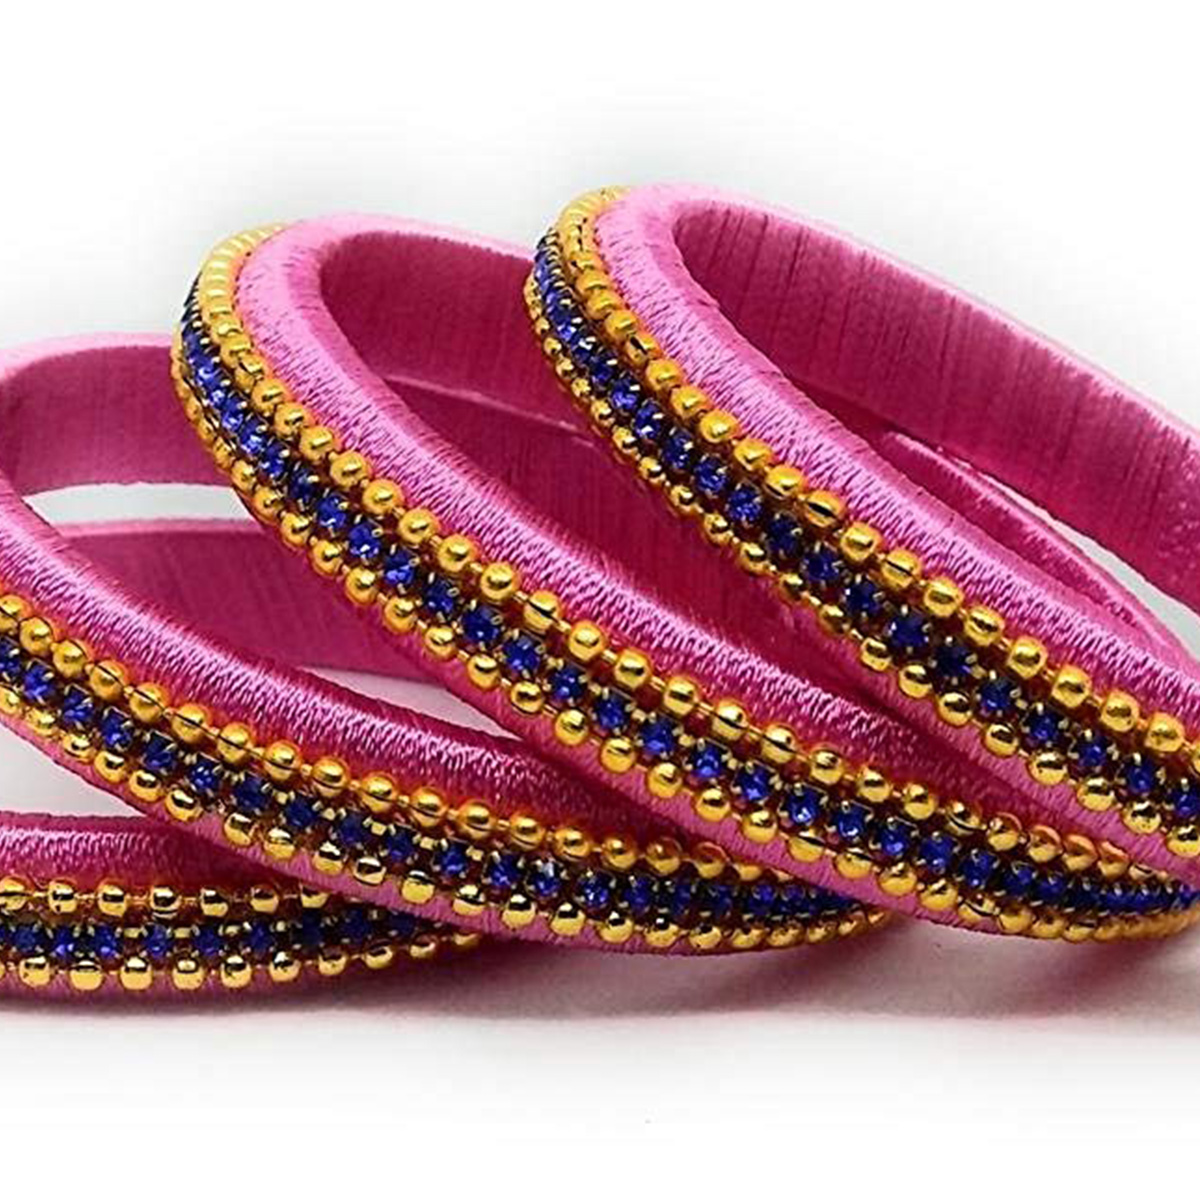 Blooming Pink Colored Silk Tread & Stone Work Bangles - Set Of 4